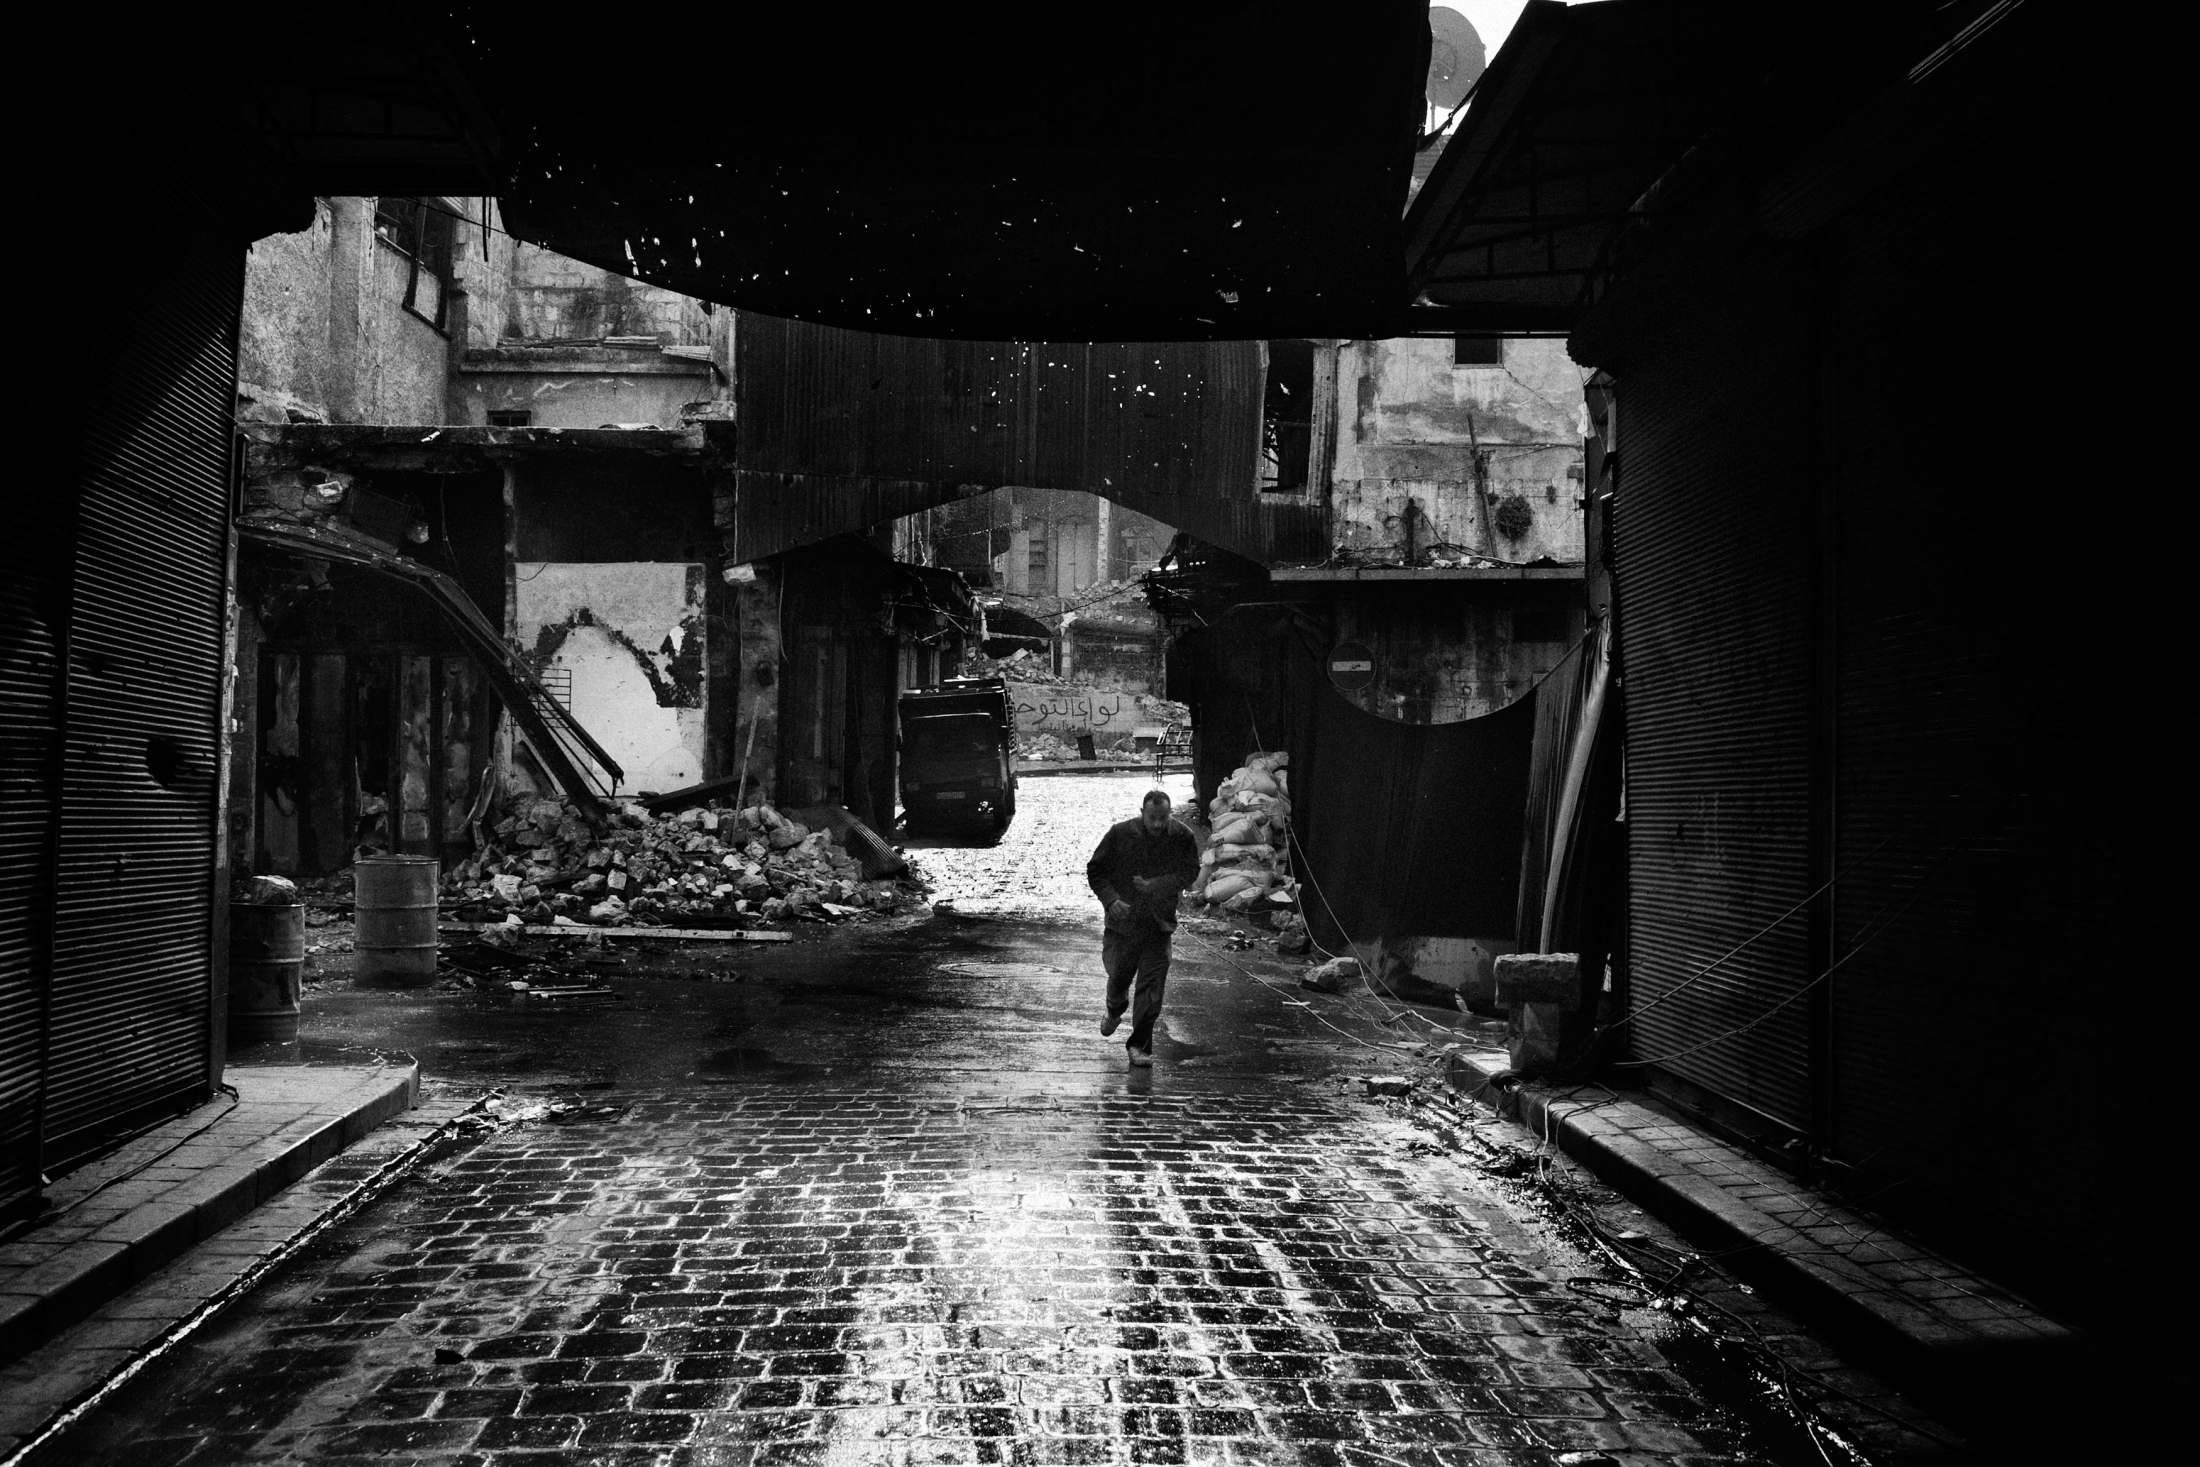 """A man running across the street blinded by blankets (right part of the image) to avoid the shoot of a snipper loyal to Assad in the Old City of Aleppo, Syria, Wednesday, Jan. 6, 2013. The United Nations estimated that more than 400,000 people have been killed in Syria's 60-month-old uprising against authoritarian rule, a toll one-third higher than what anti-regime activists had counted. The U.N. human rights chief called the toll """"truly shocking."""" Copyright: Spanish Photojournalist Andoni Lubaki"""